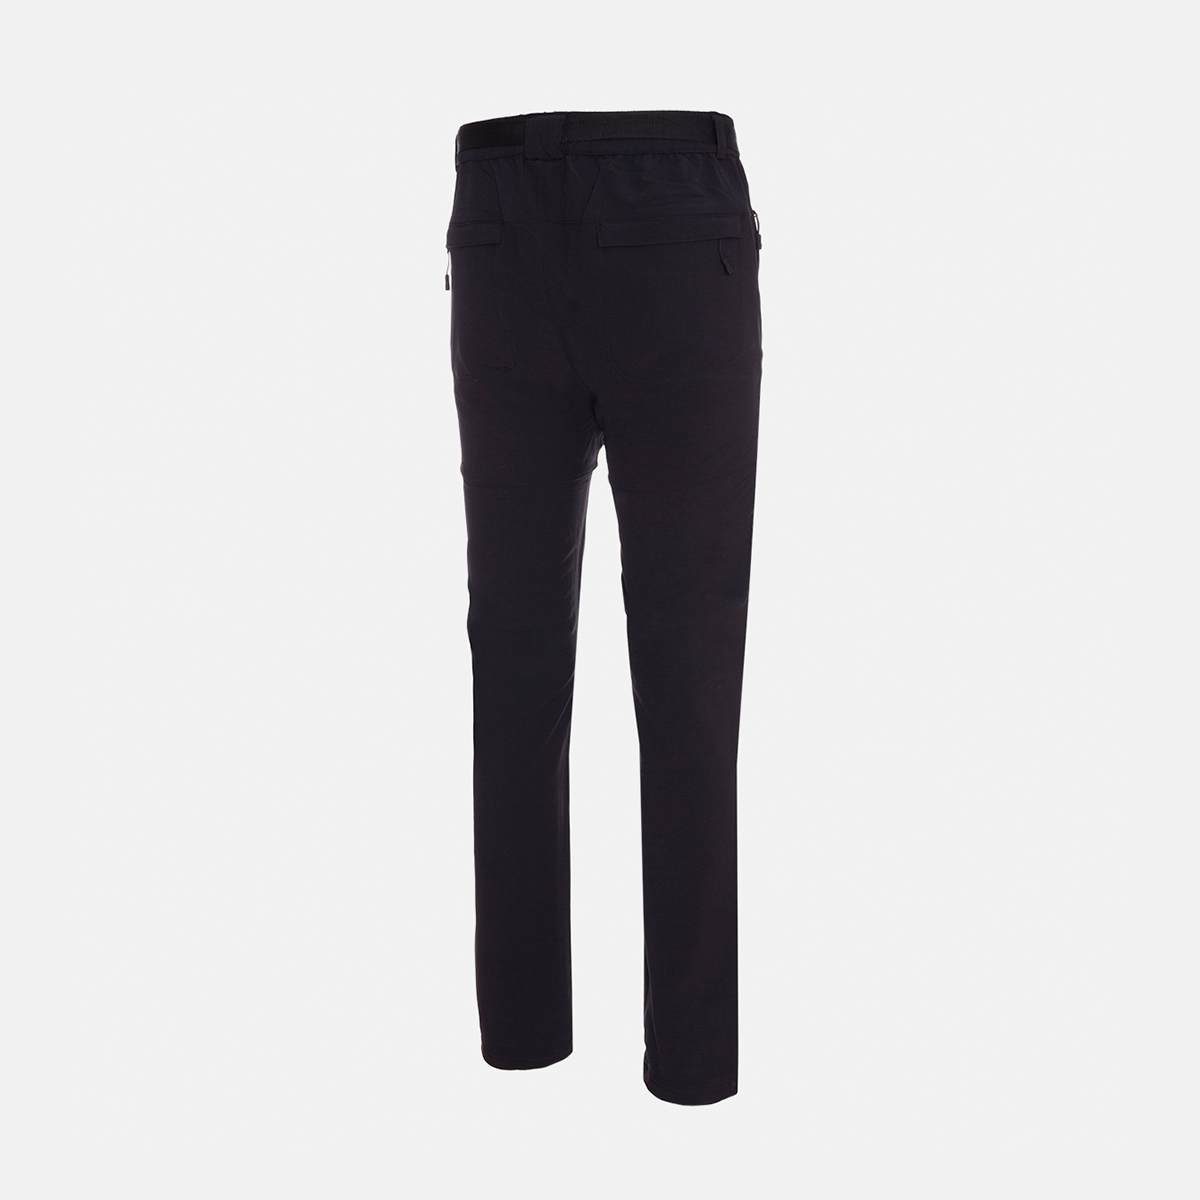 MAN'S MICHIGAN MOUNT STRETCH PANT BLACK